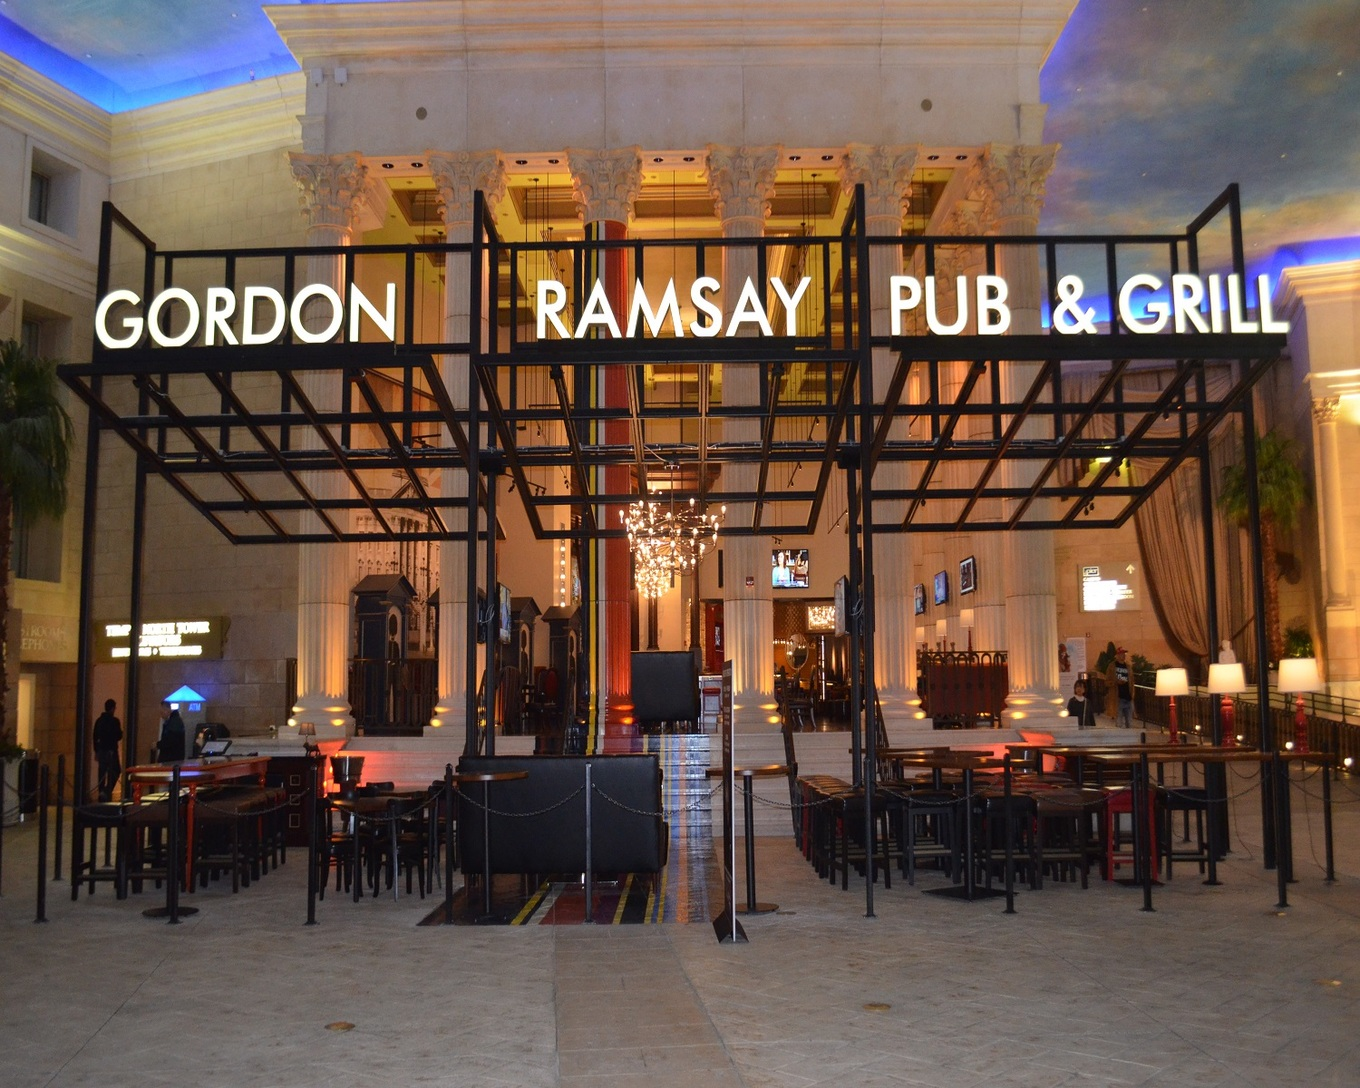 Groovy Hells Kitchen Takeover Tickets Gordon Ramsay Pub Home Interior And Landscaping Ologienasavecom